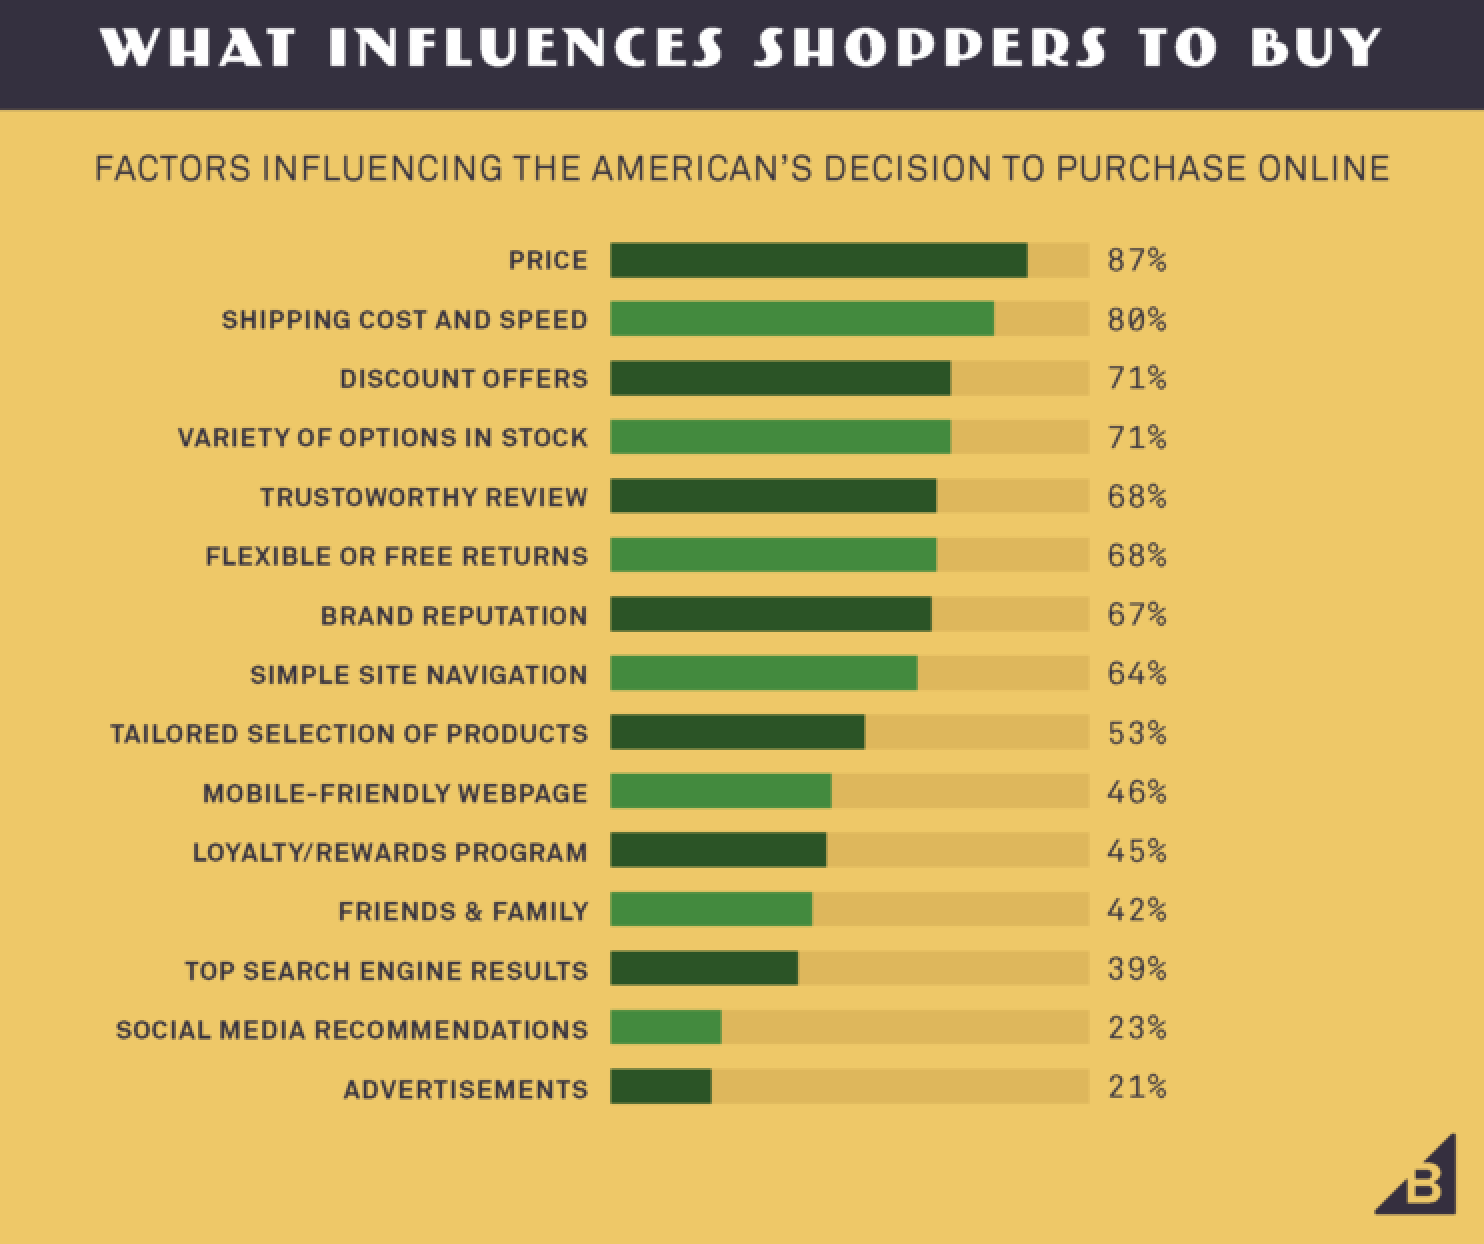 Factors influencing American online shopping decisions